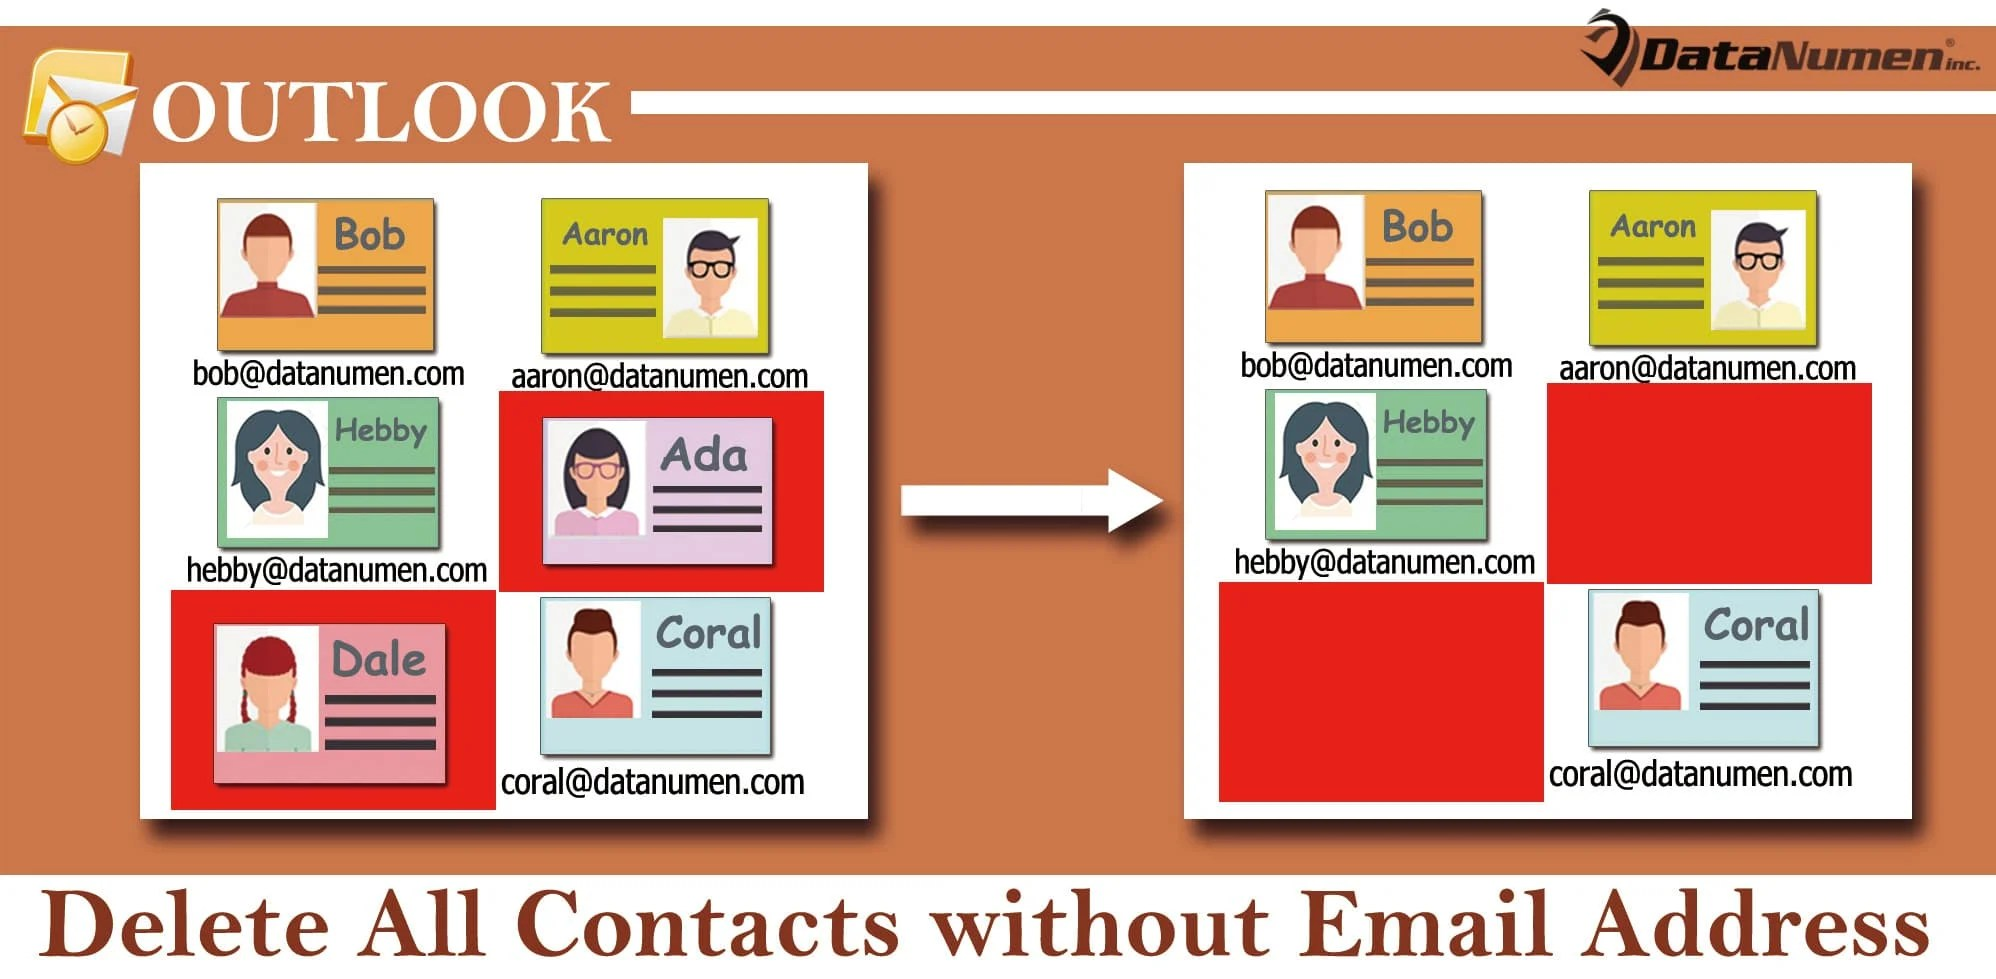 Batch Delete All Contacts without Email Address in Your Outlook